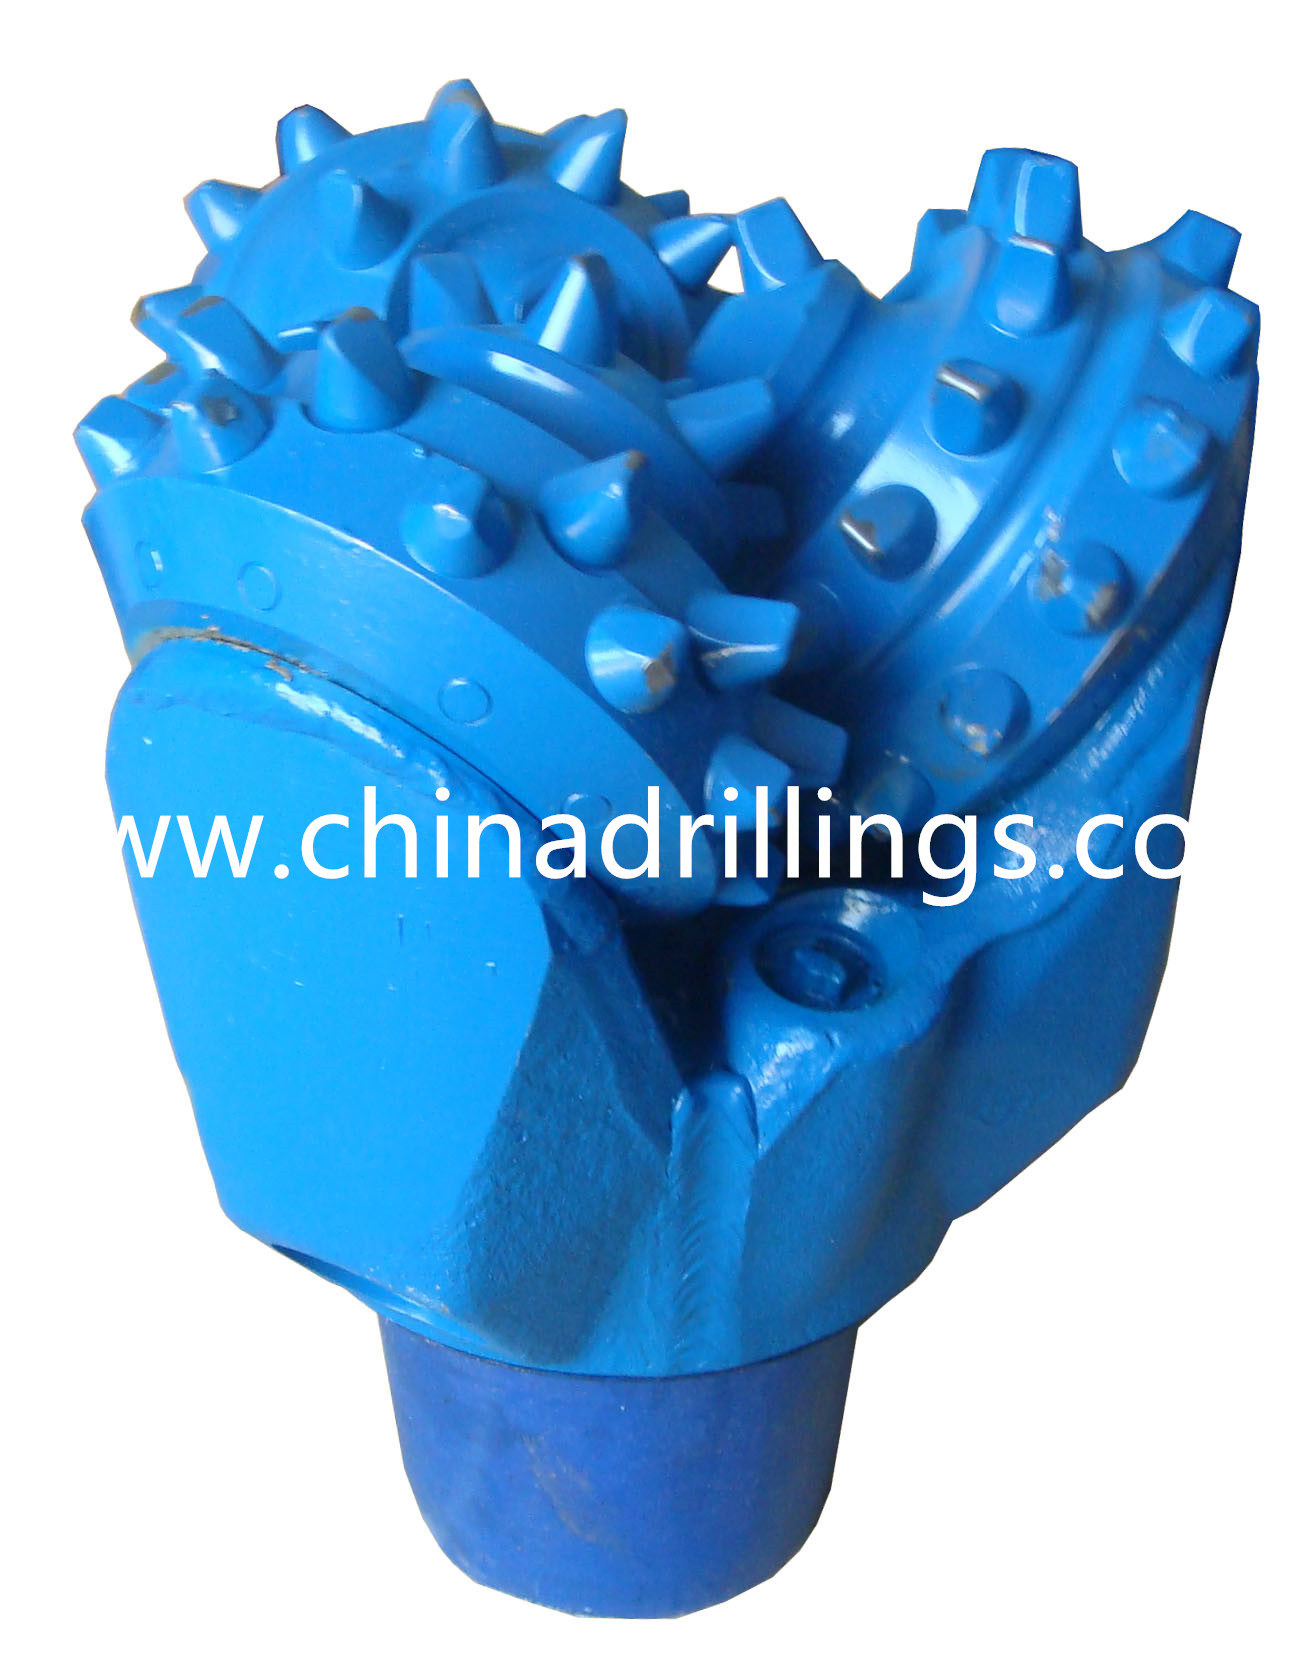 26′′ TCI Steel Tricone Bits IADC417 Oil/Water/Gas Drilling